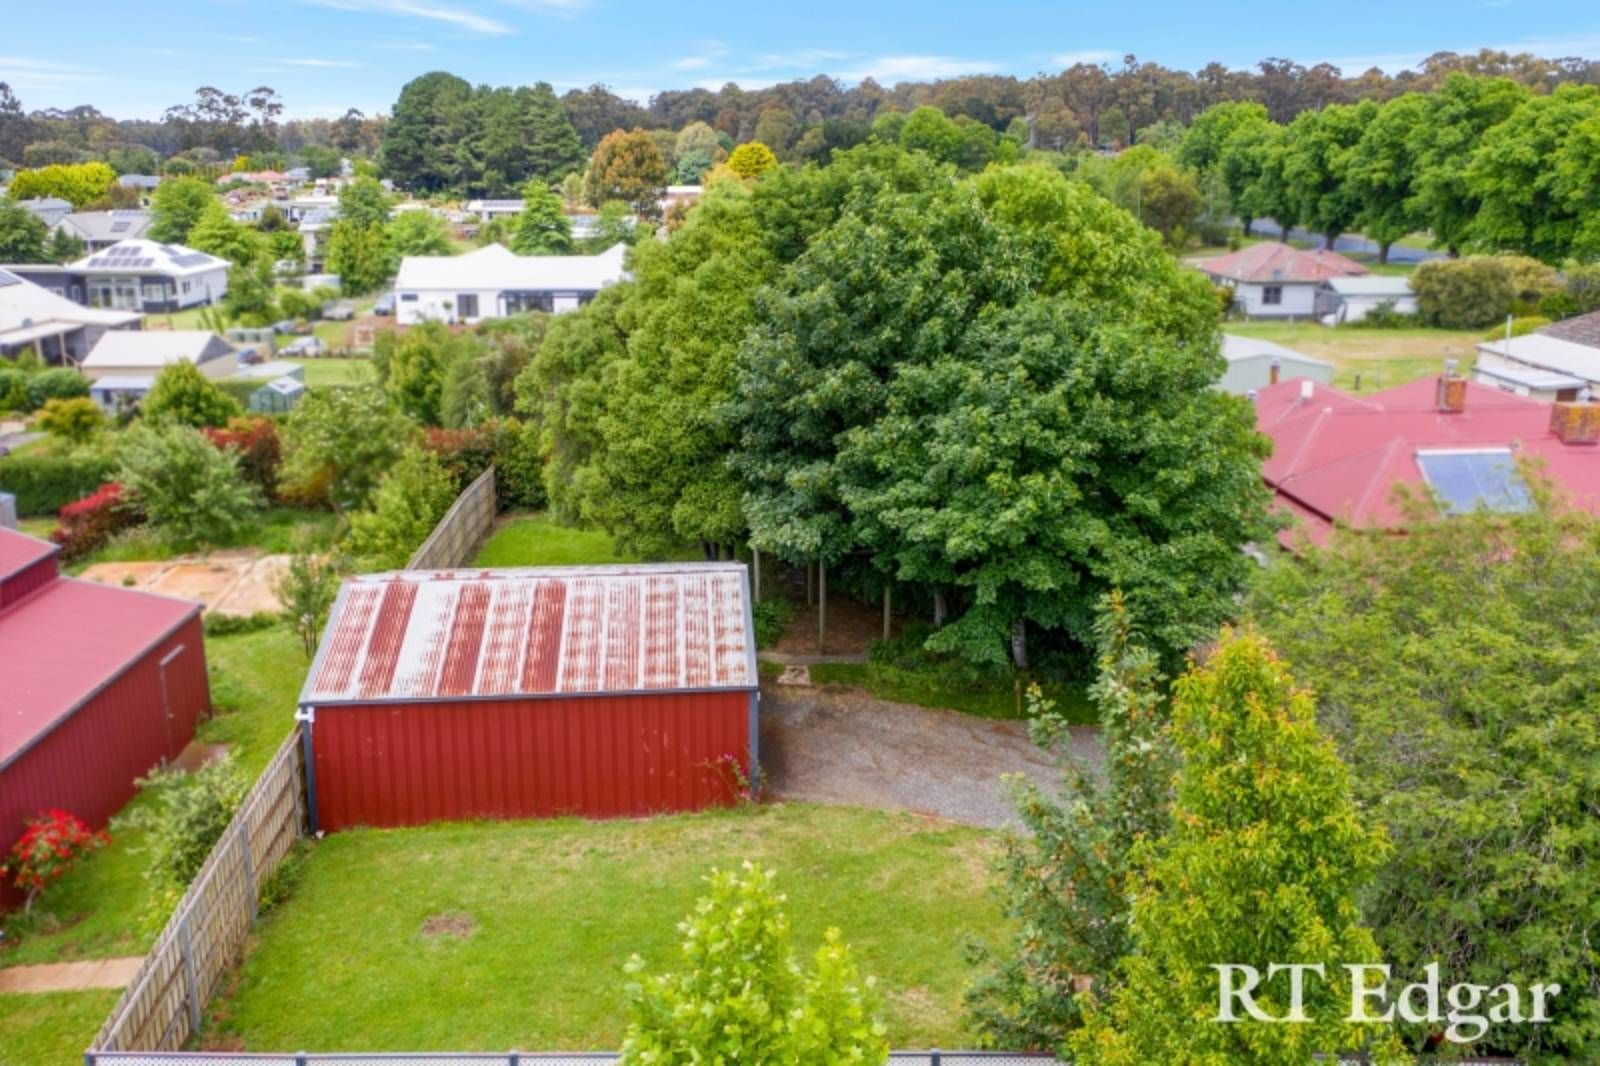 Lot 2/5 South Street, Trentham VIC 3458, Image 0